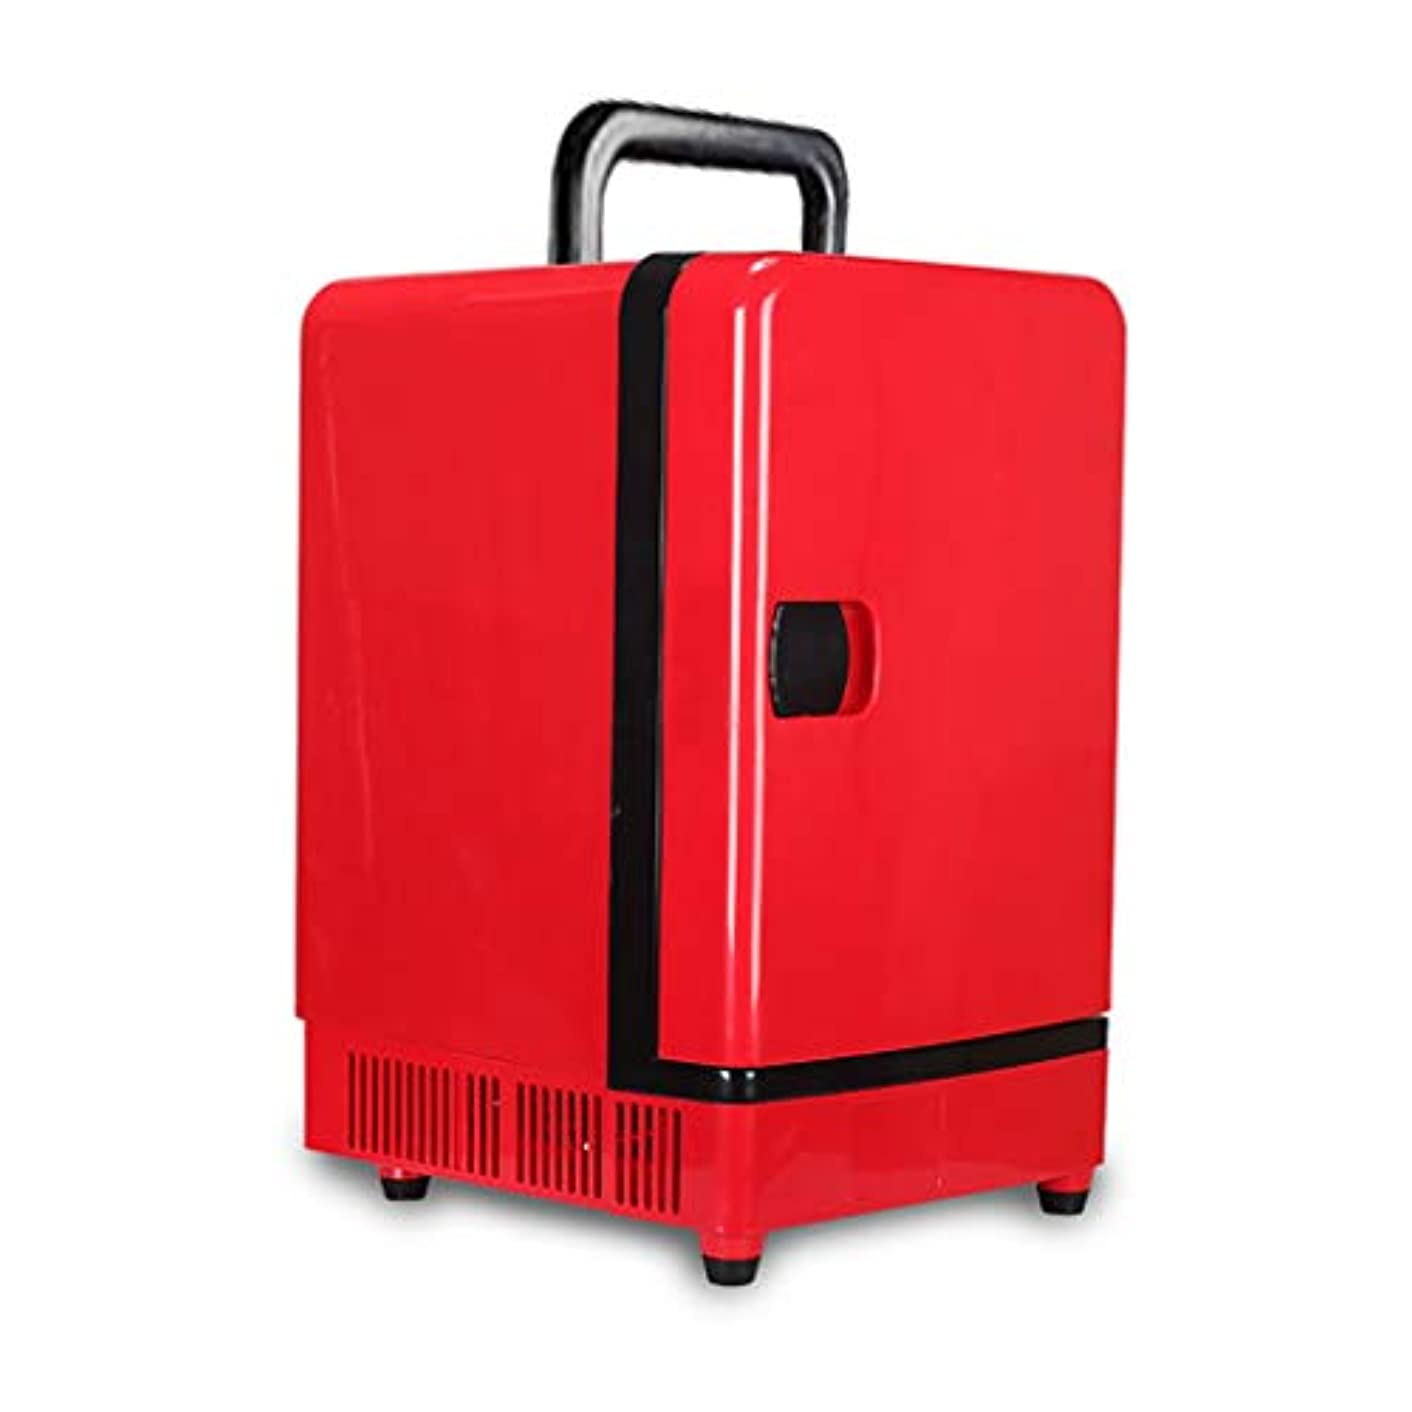 16L Car Refrigerator Compact Cooler/Warmer Mini Fridge, for Sports & Outdoors & Homes, Red